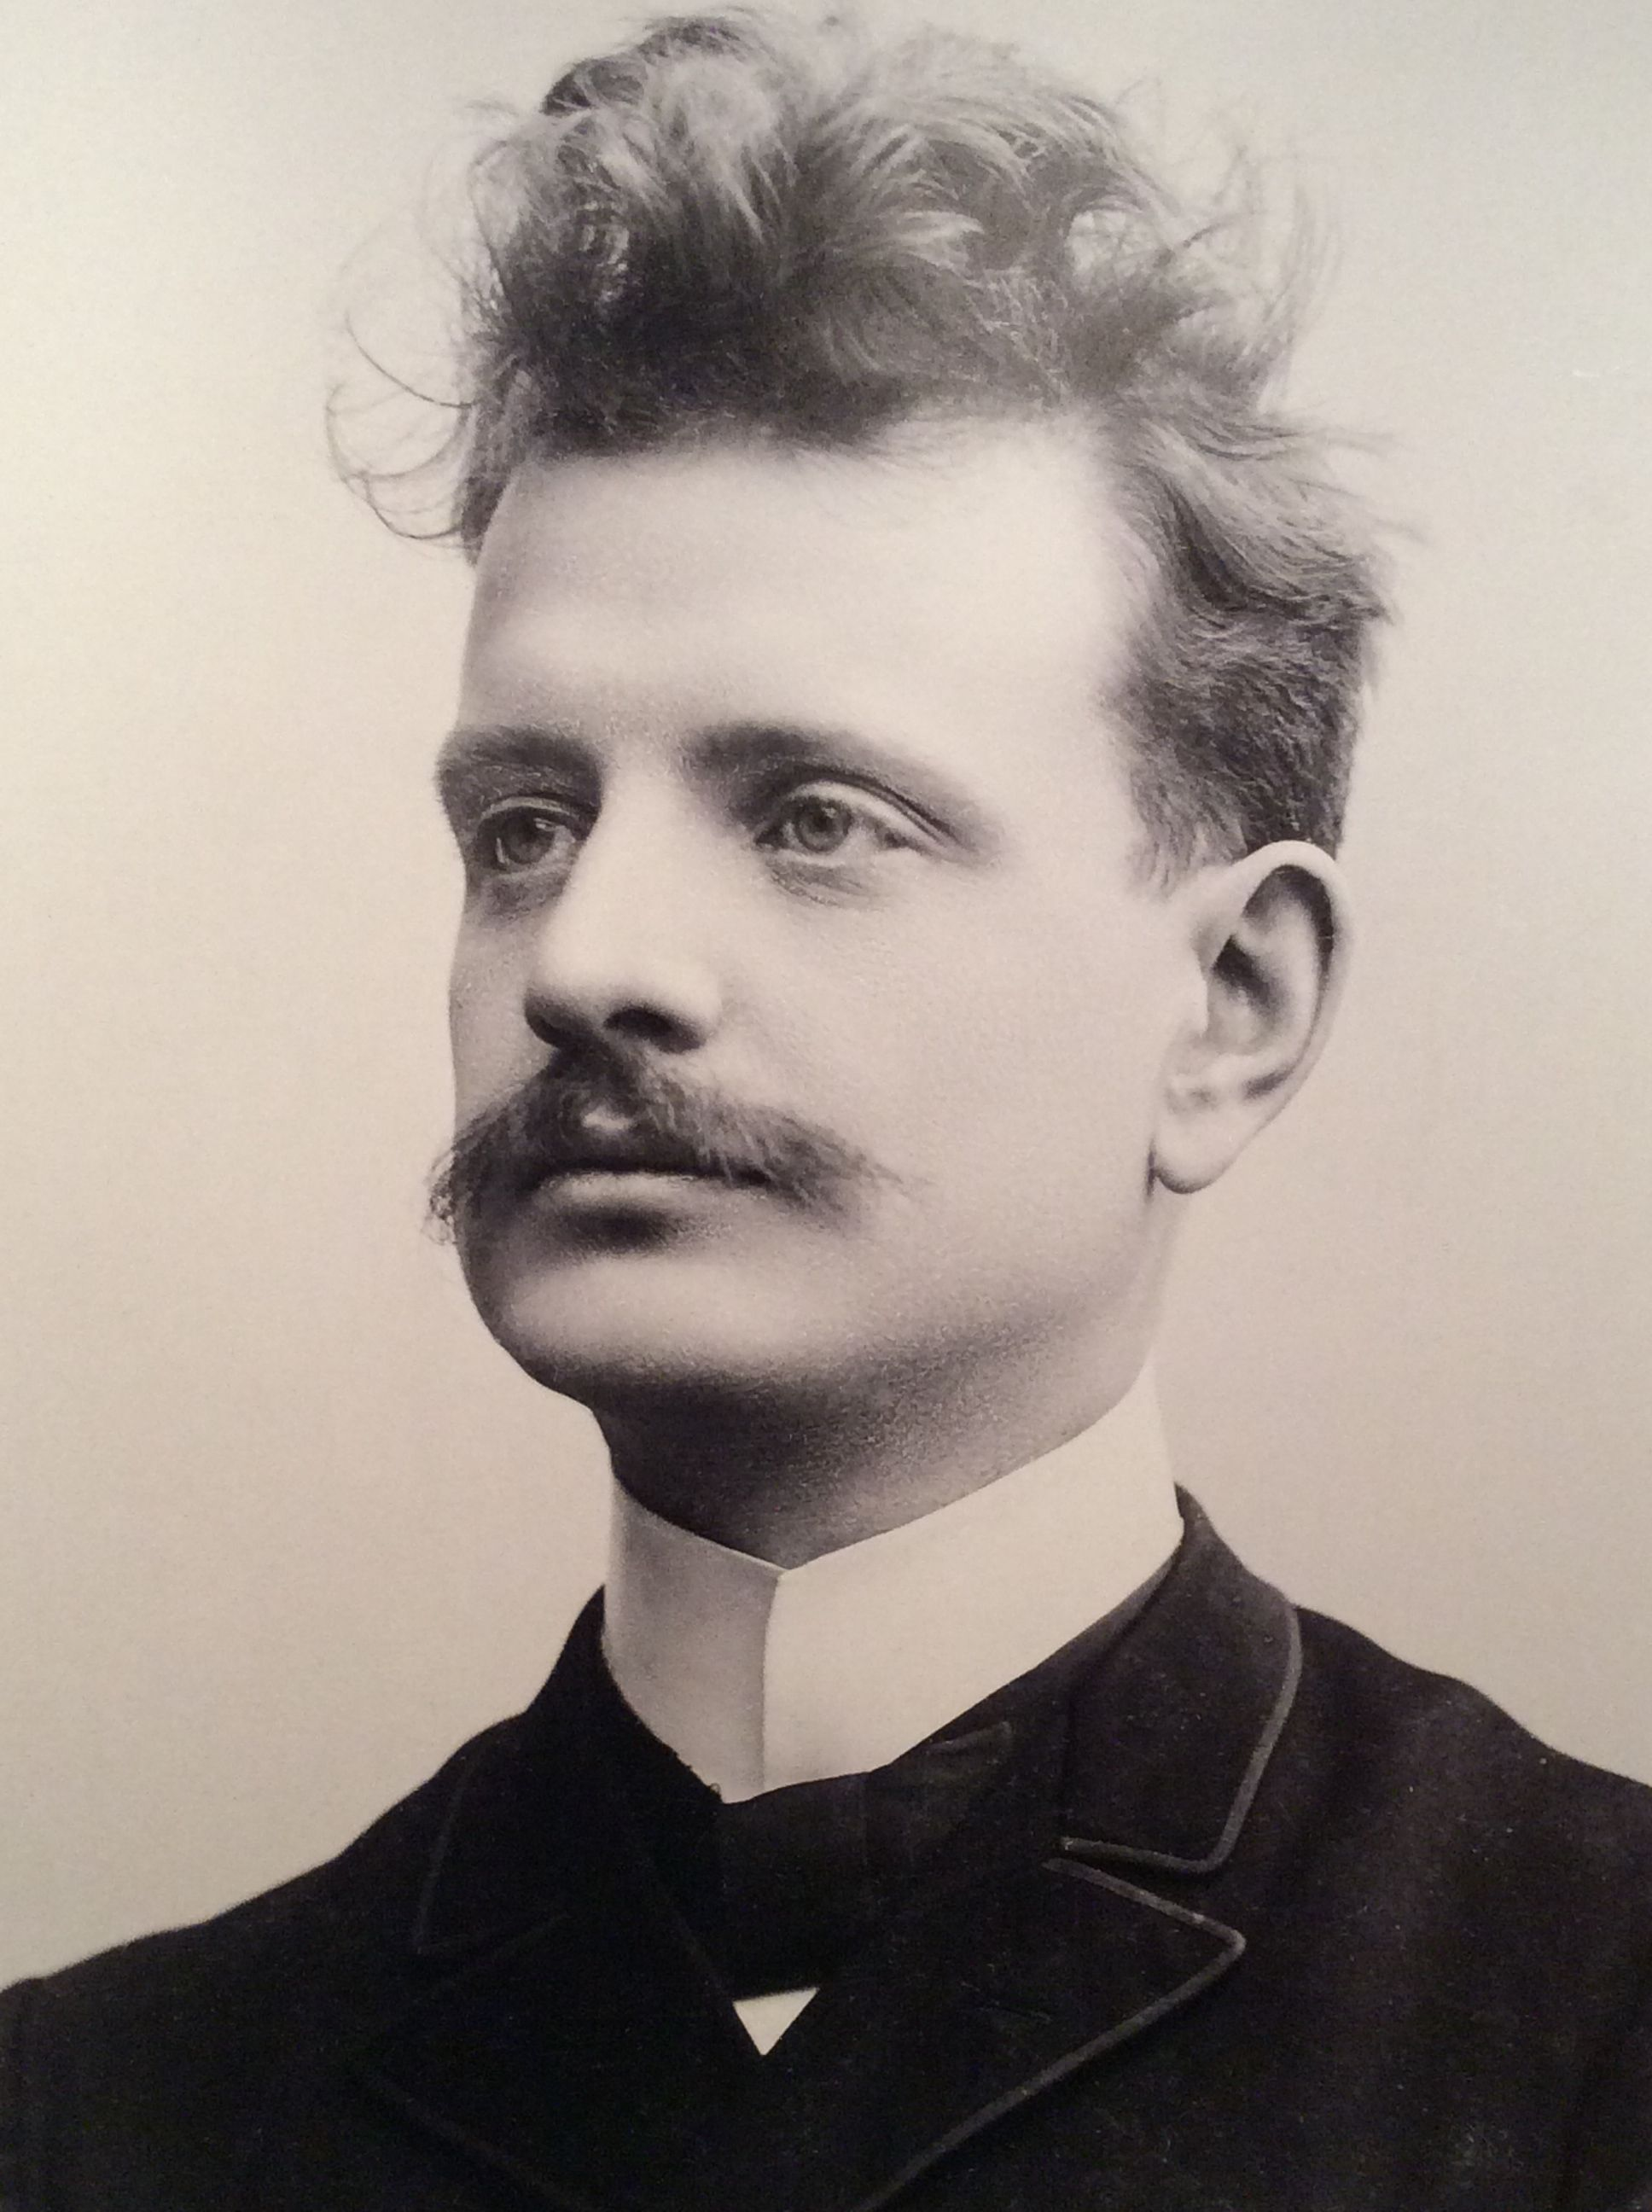 Jean Sibelius 1865 1957 Finnish Composer And Violinist Of The Late Romantic And Early Modern Perio Famous Composers Classical Music Composers Music Composers